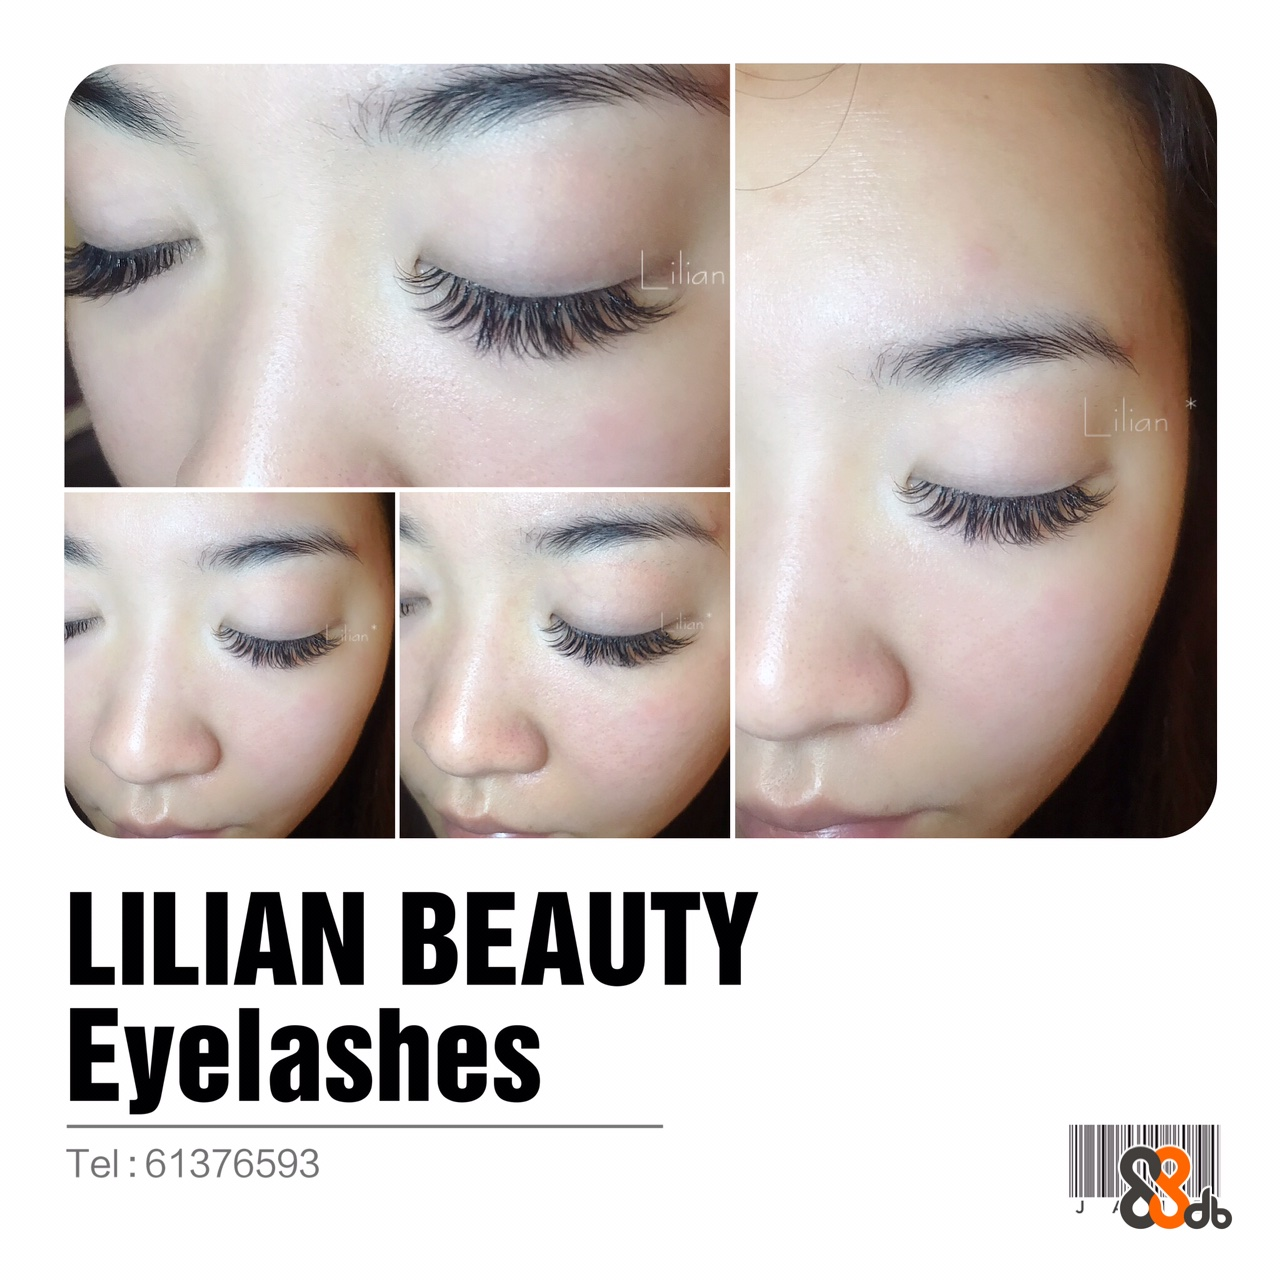 slian Lilian LILIAN BEAUTY Eyelashes Tel:61376593  Face,Eyebrow,Eyelash,Skin,Nose